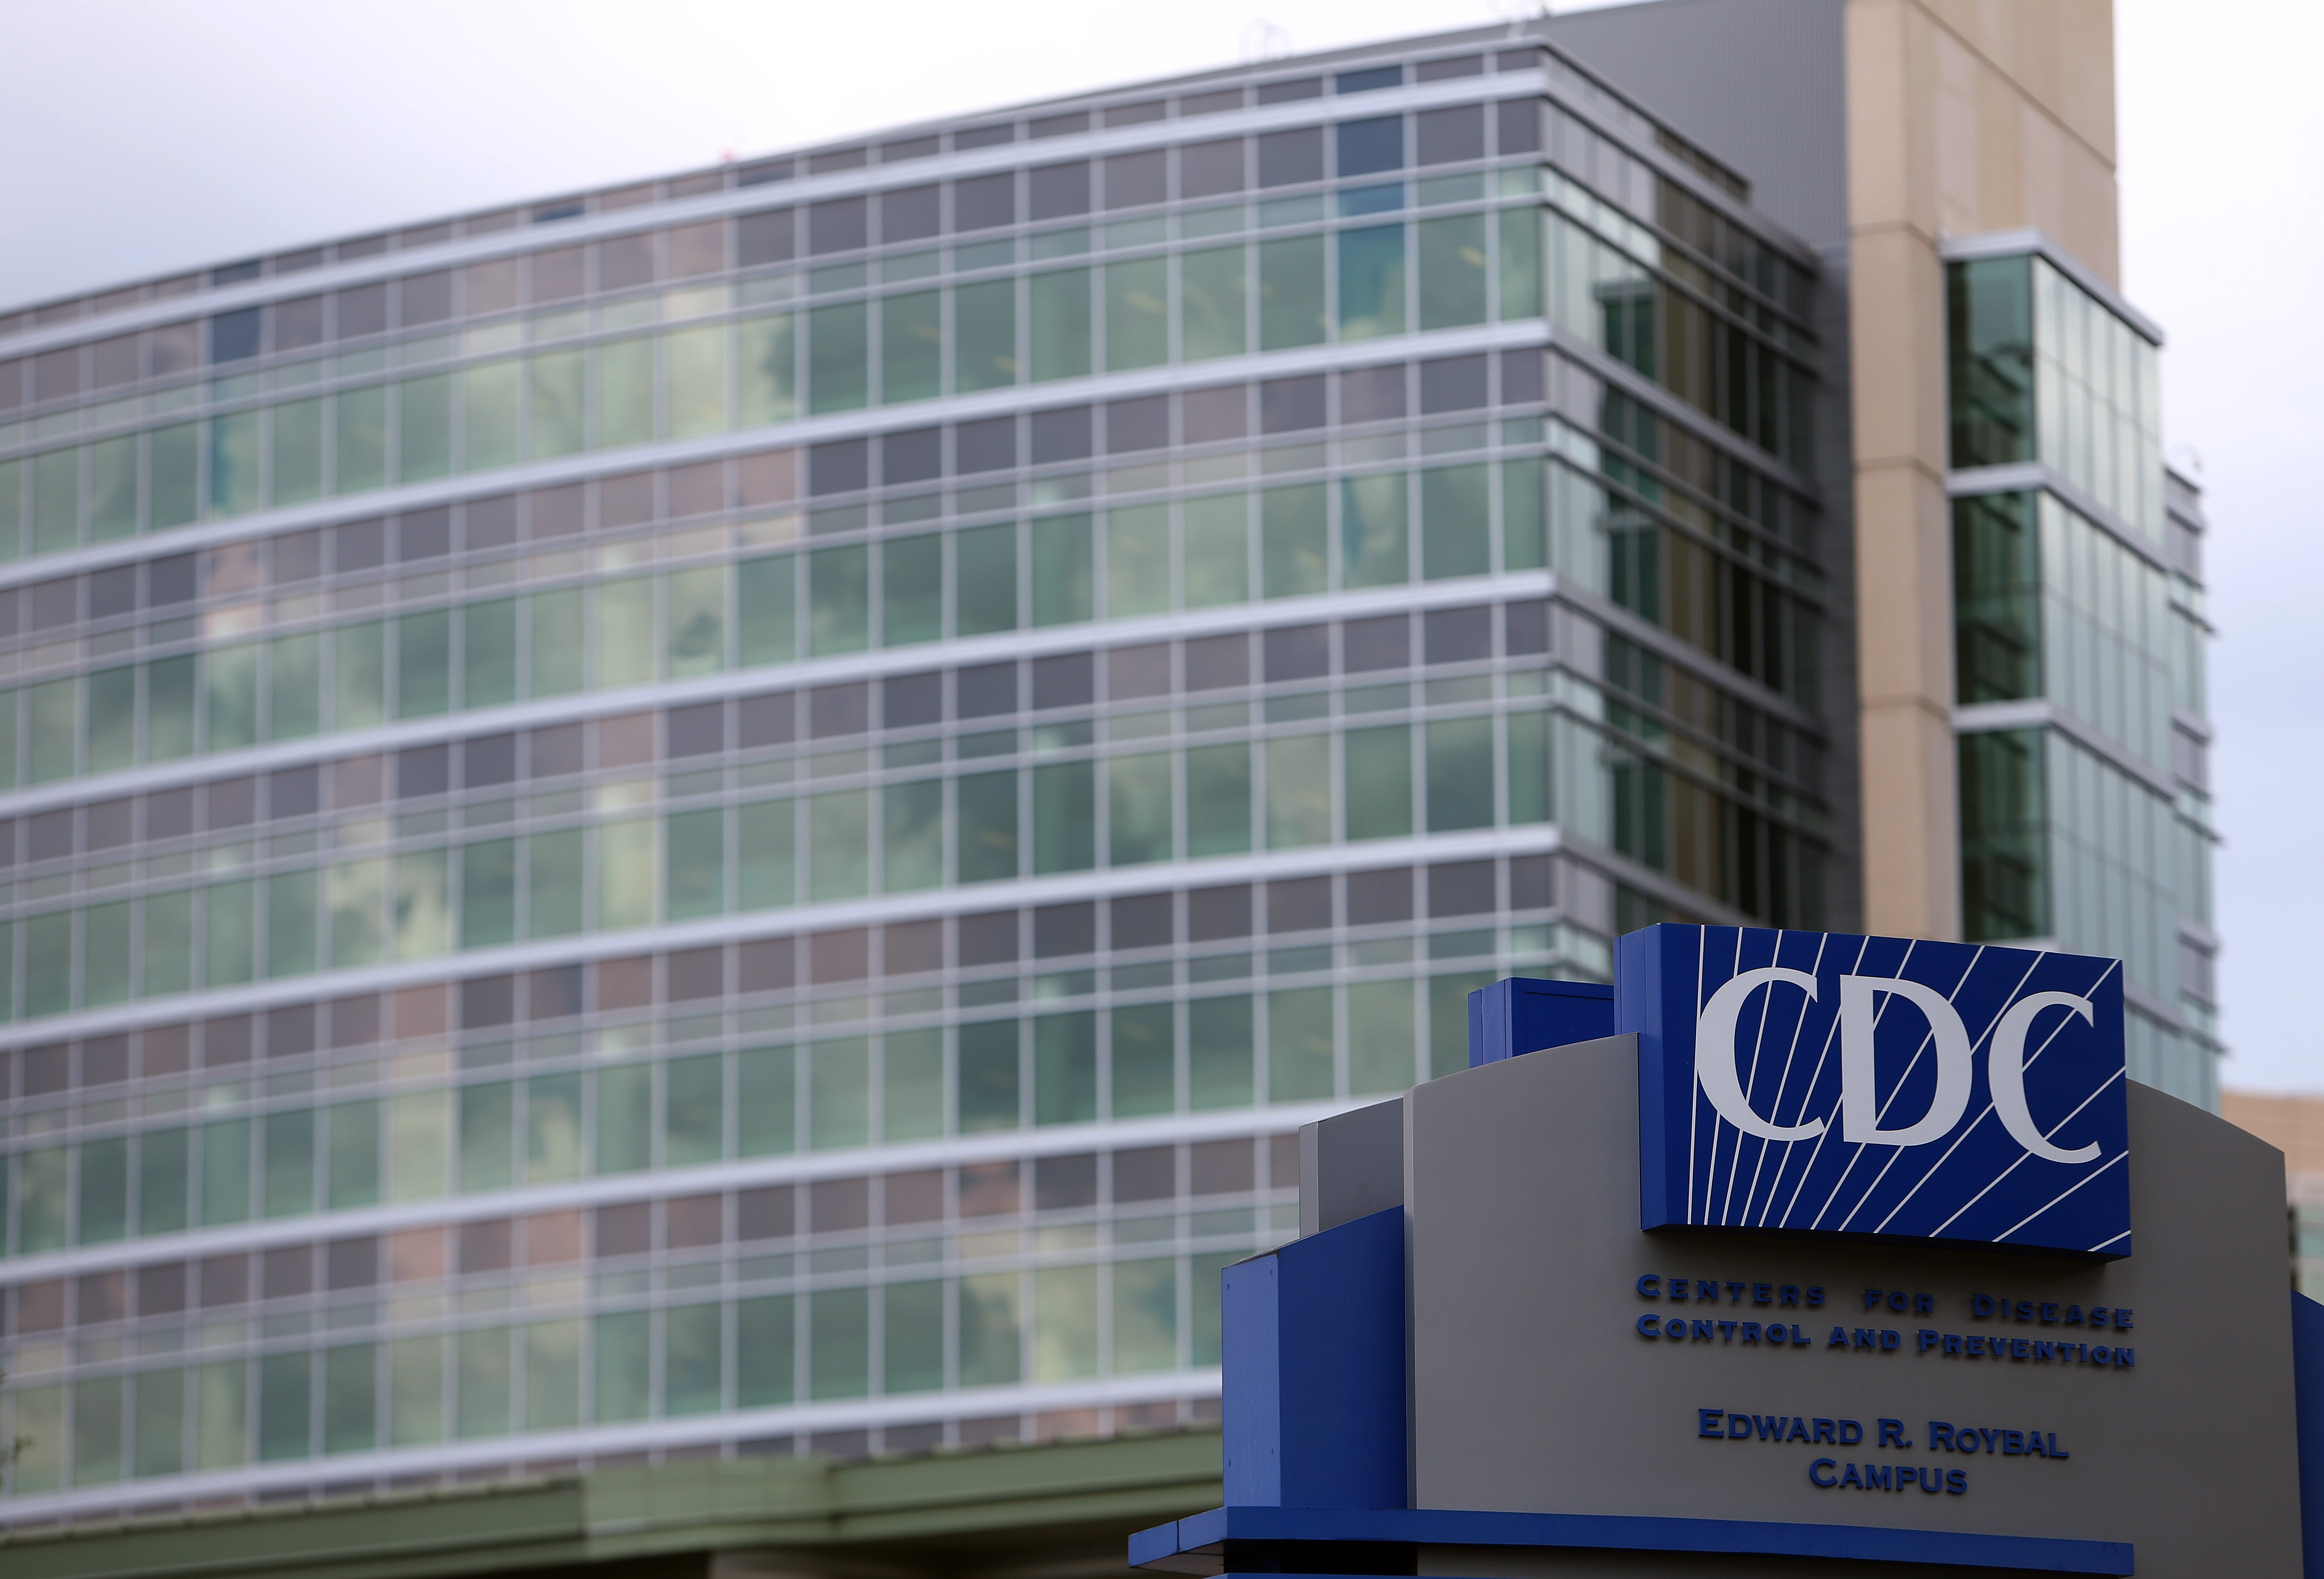 Canceled by CDC, climate change conference moves to Carter Center